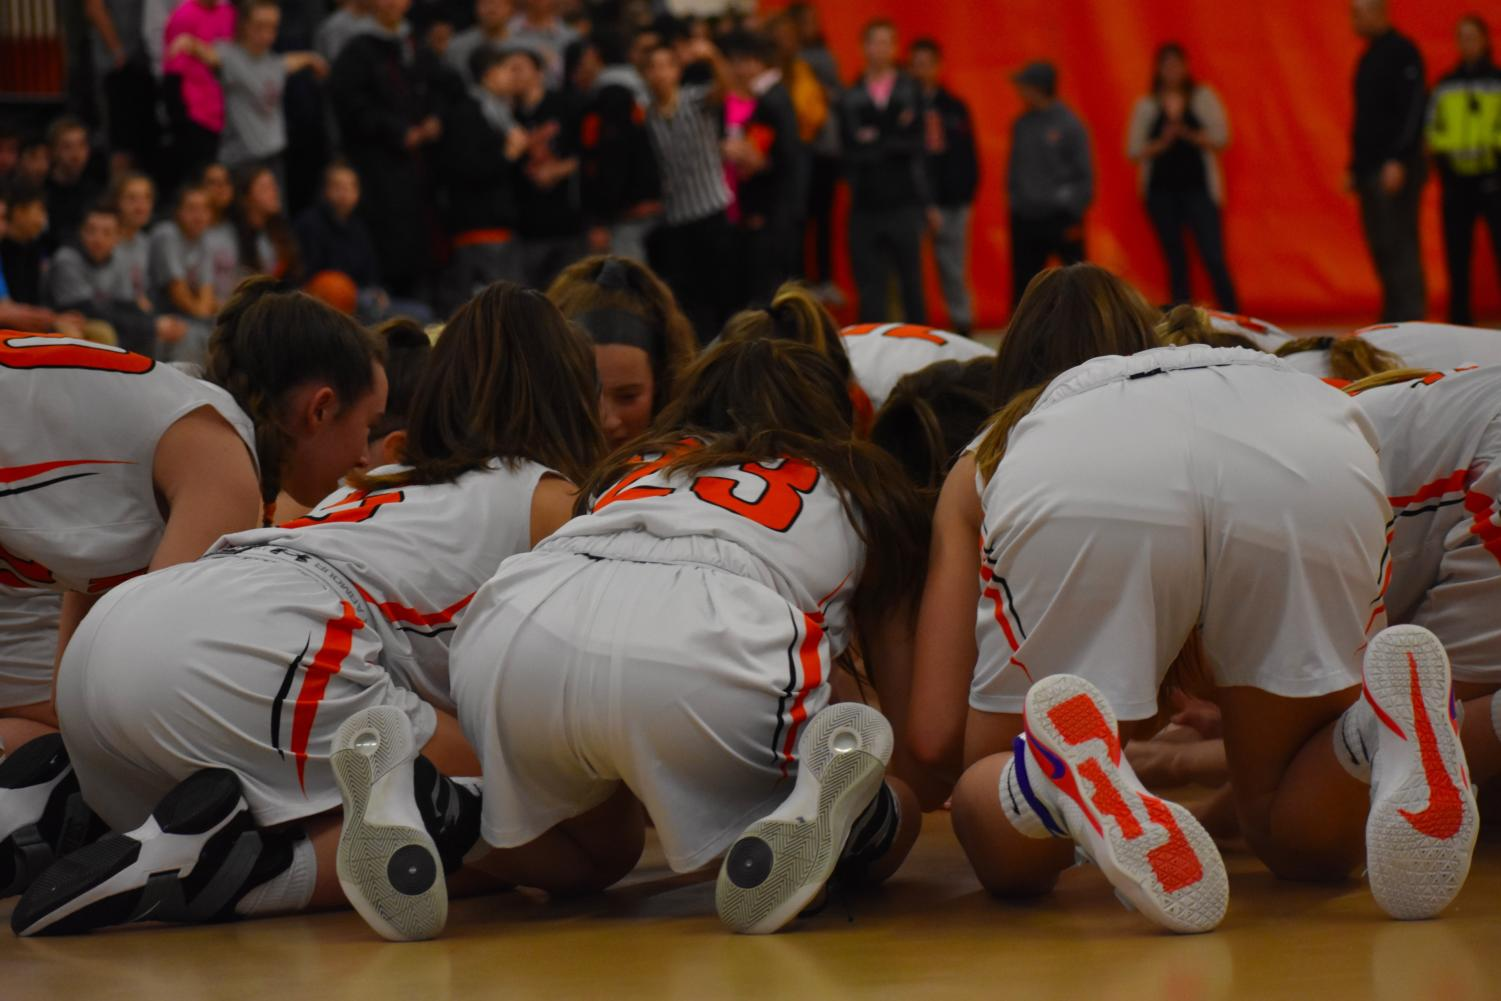 During+their+pre-game+ritual%2C+the+Wayland+girls+get+into+a+tight+huddle+on+the+ground+and+hear+from+captains+Balicki+and+Kiernan.+